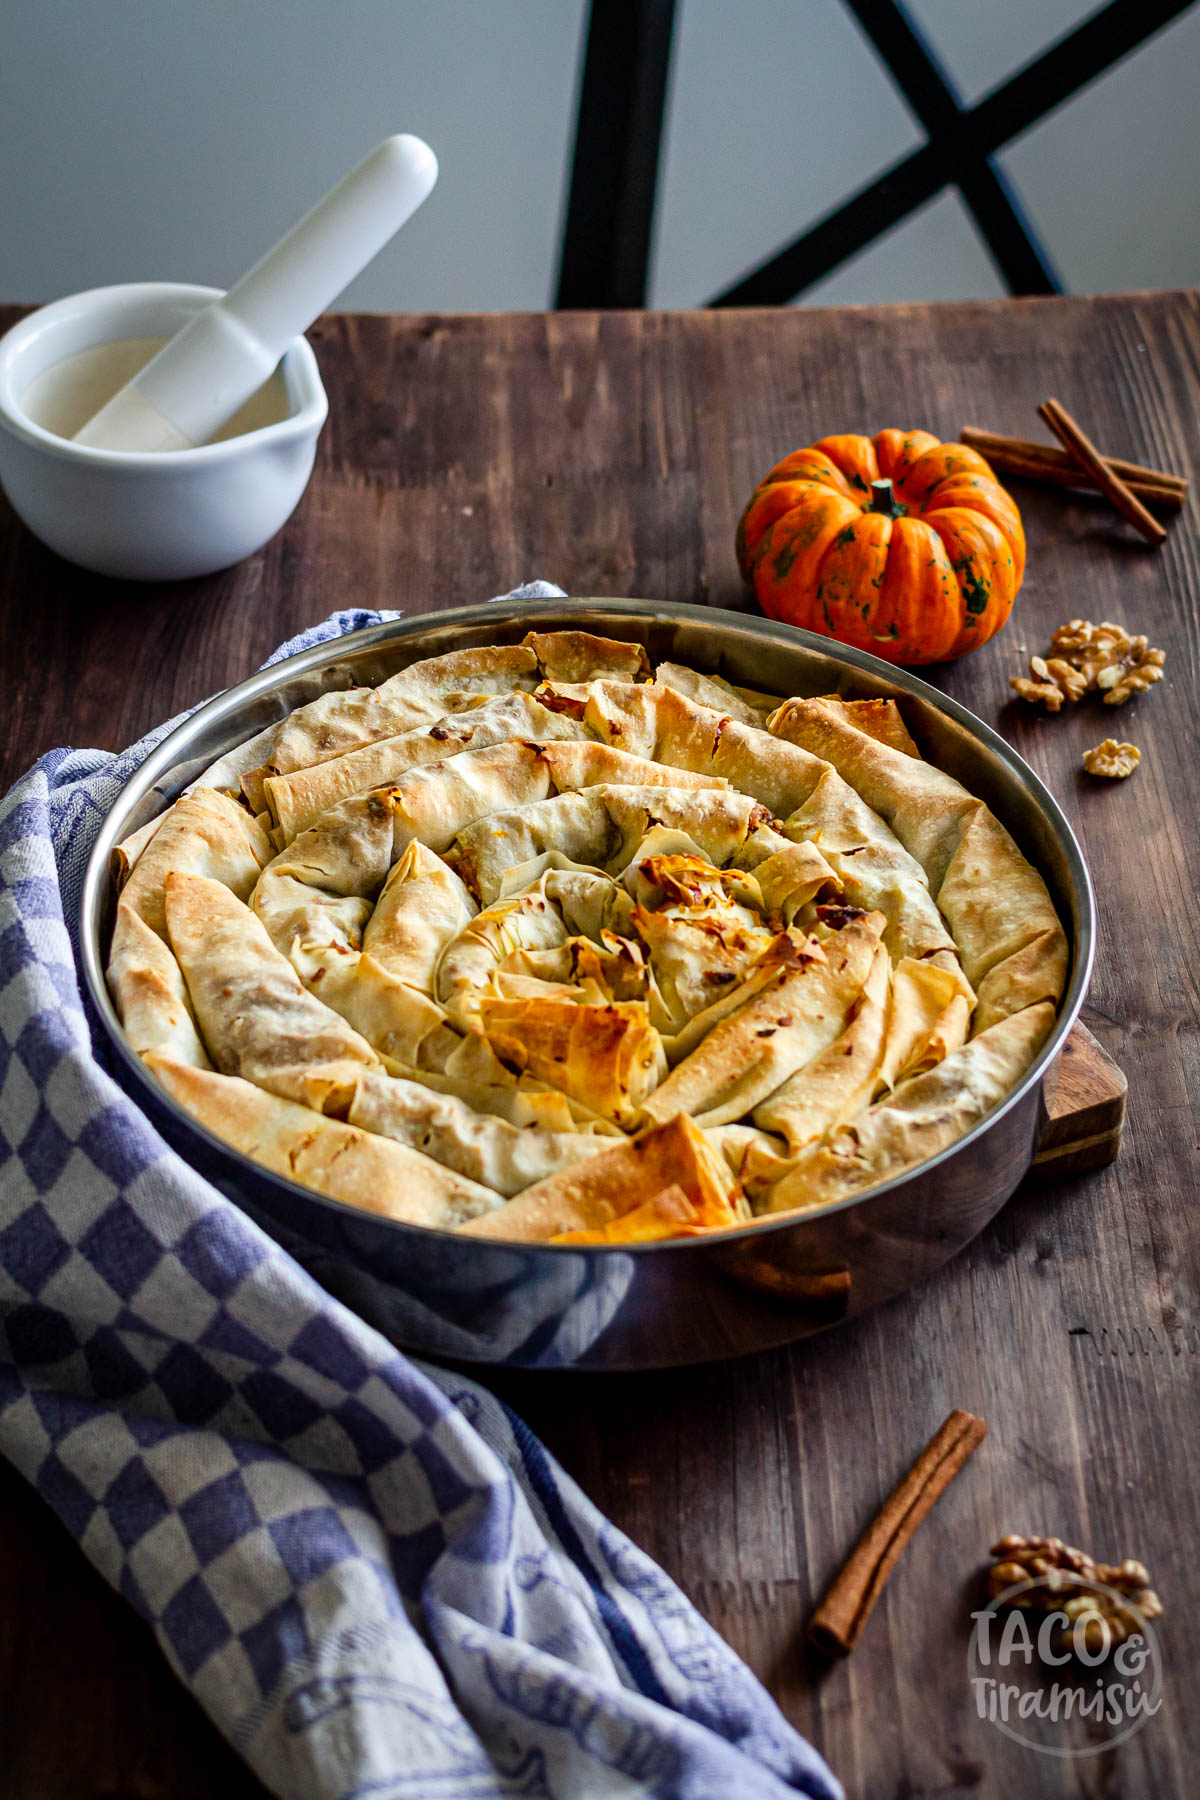 pumpkin banitsa on a wooden background with mortar and pestle aside